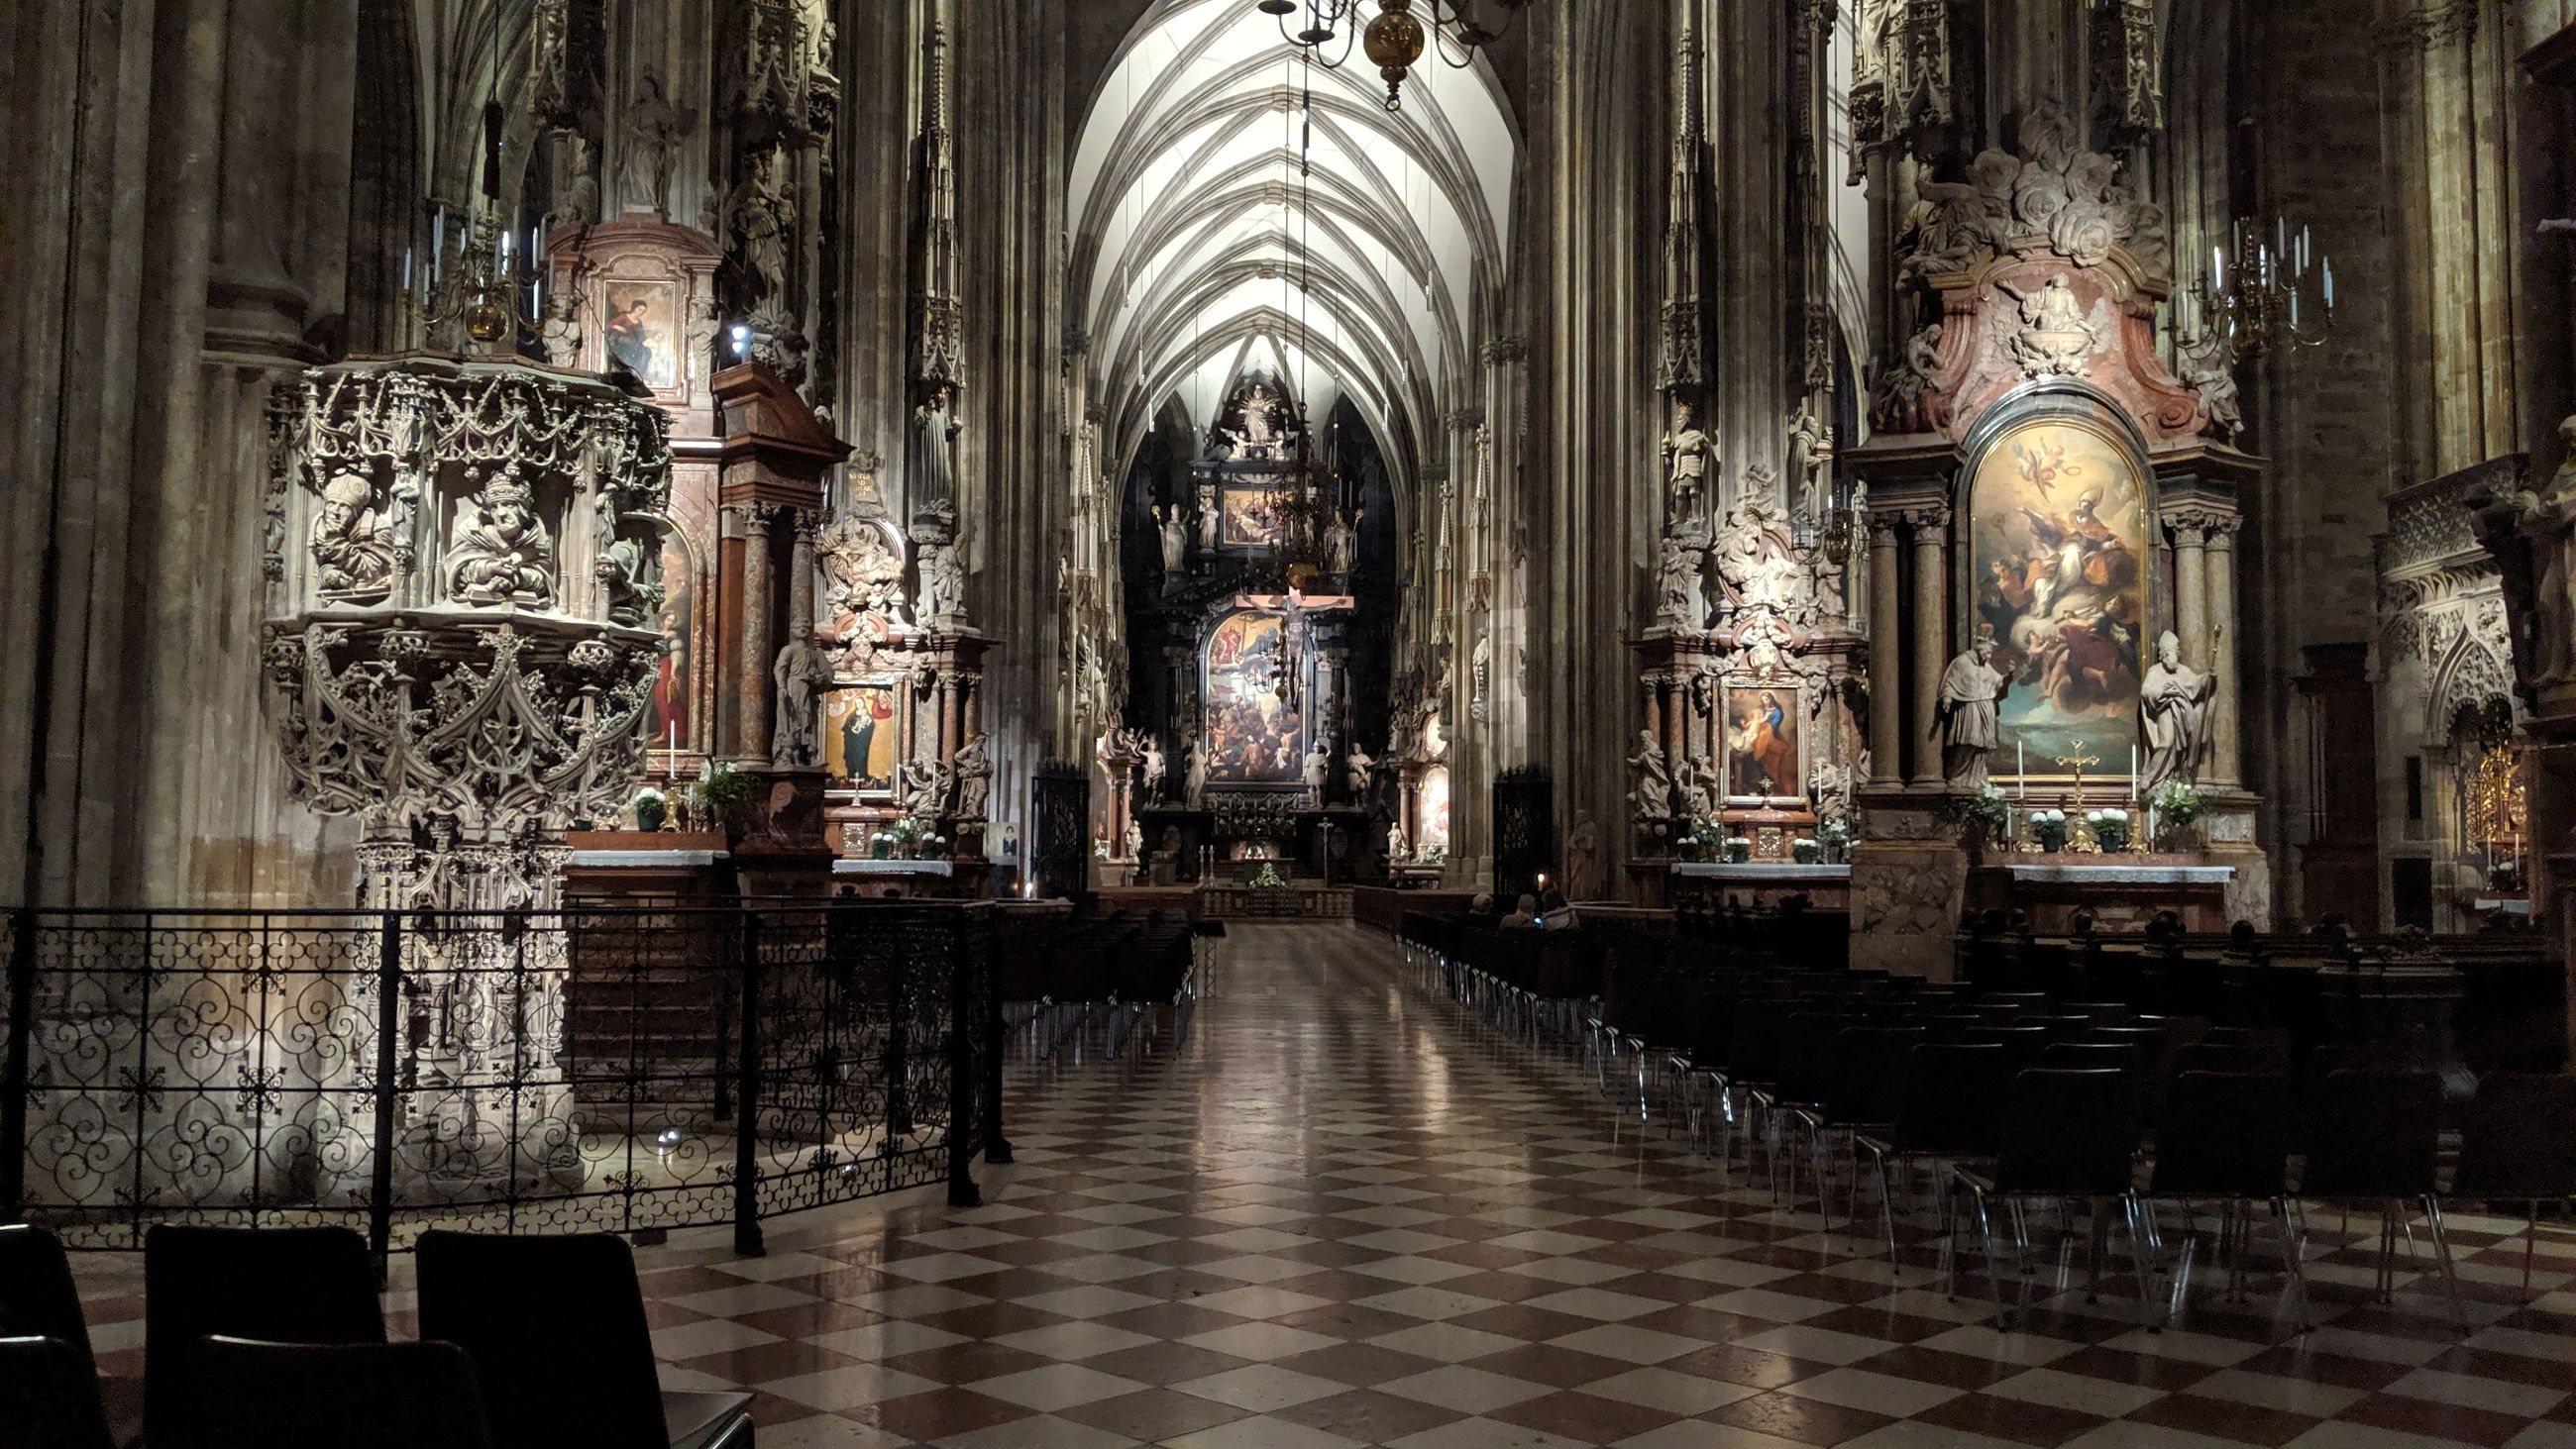 place of worship, religion, belief, architecture, building, built structure, indoors, spirituality, the past, history, architectural column, altar, glass, sculpture, pew, flooring, tiled floor, gothic style, aisle